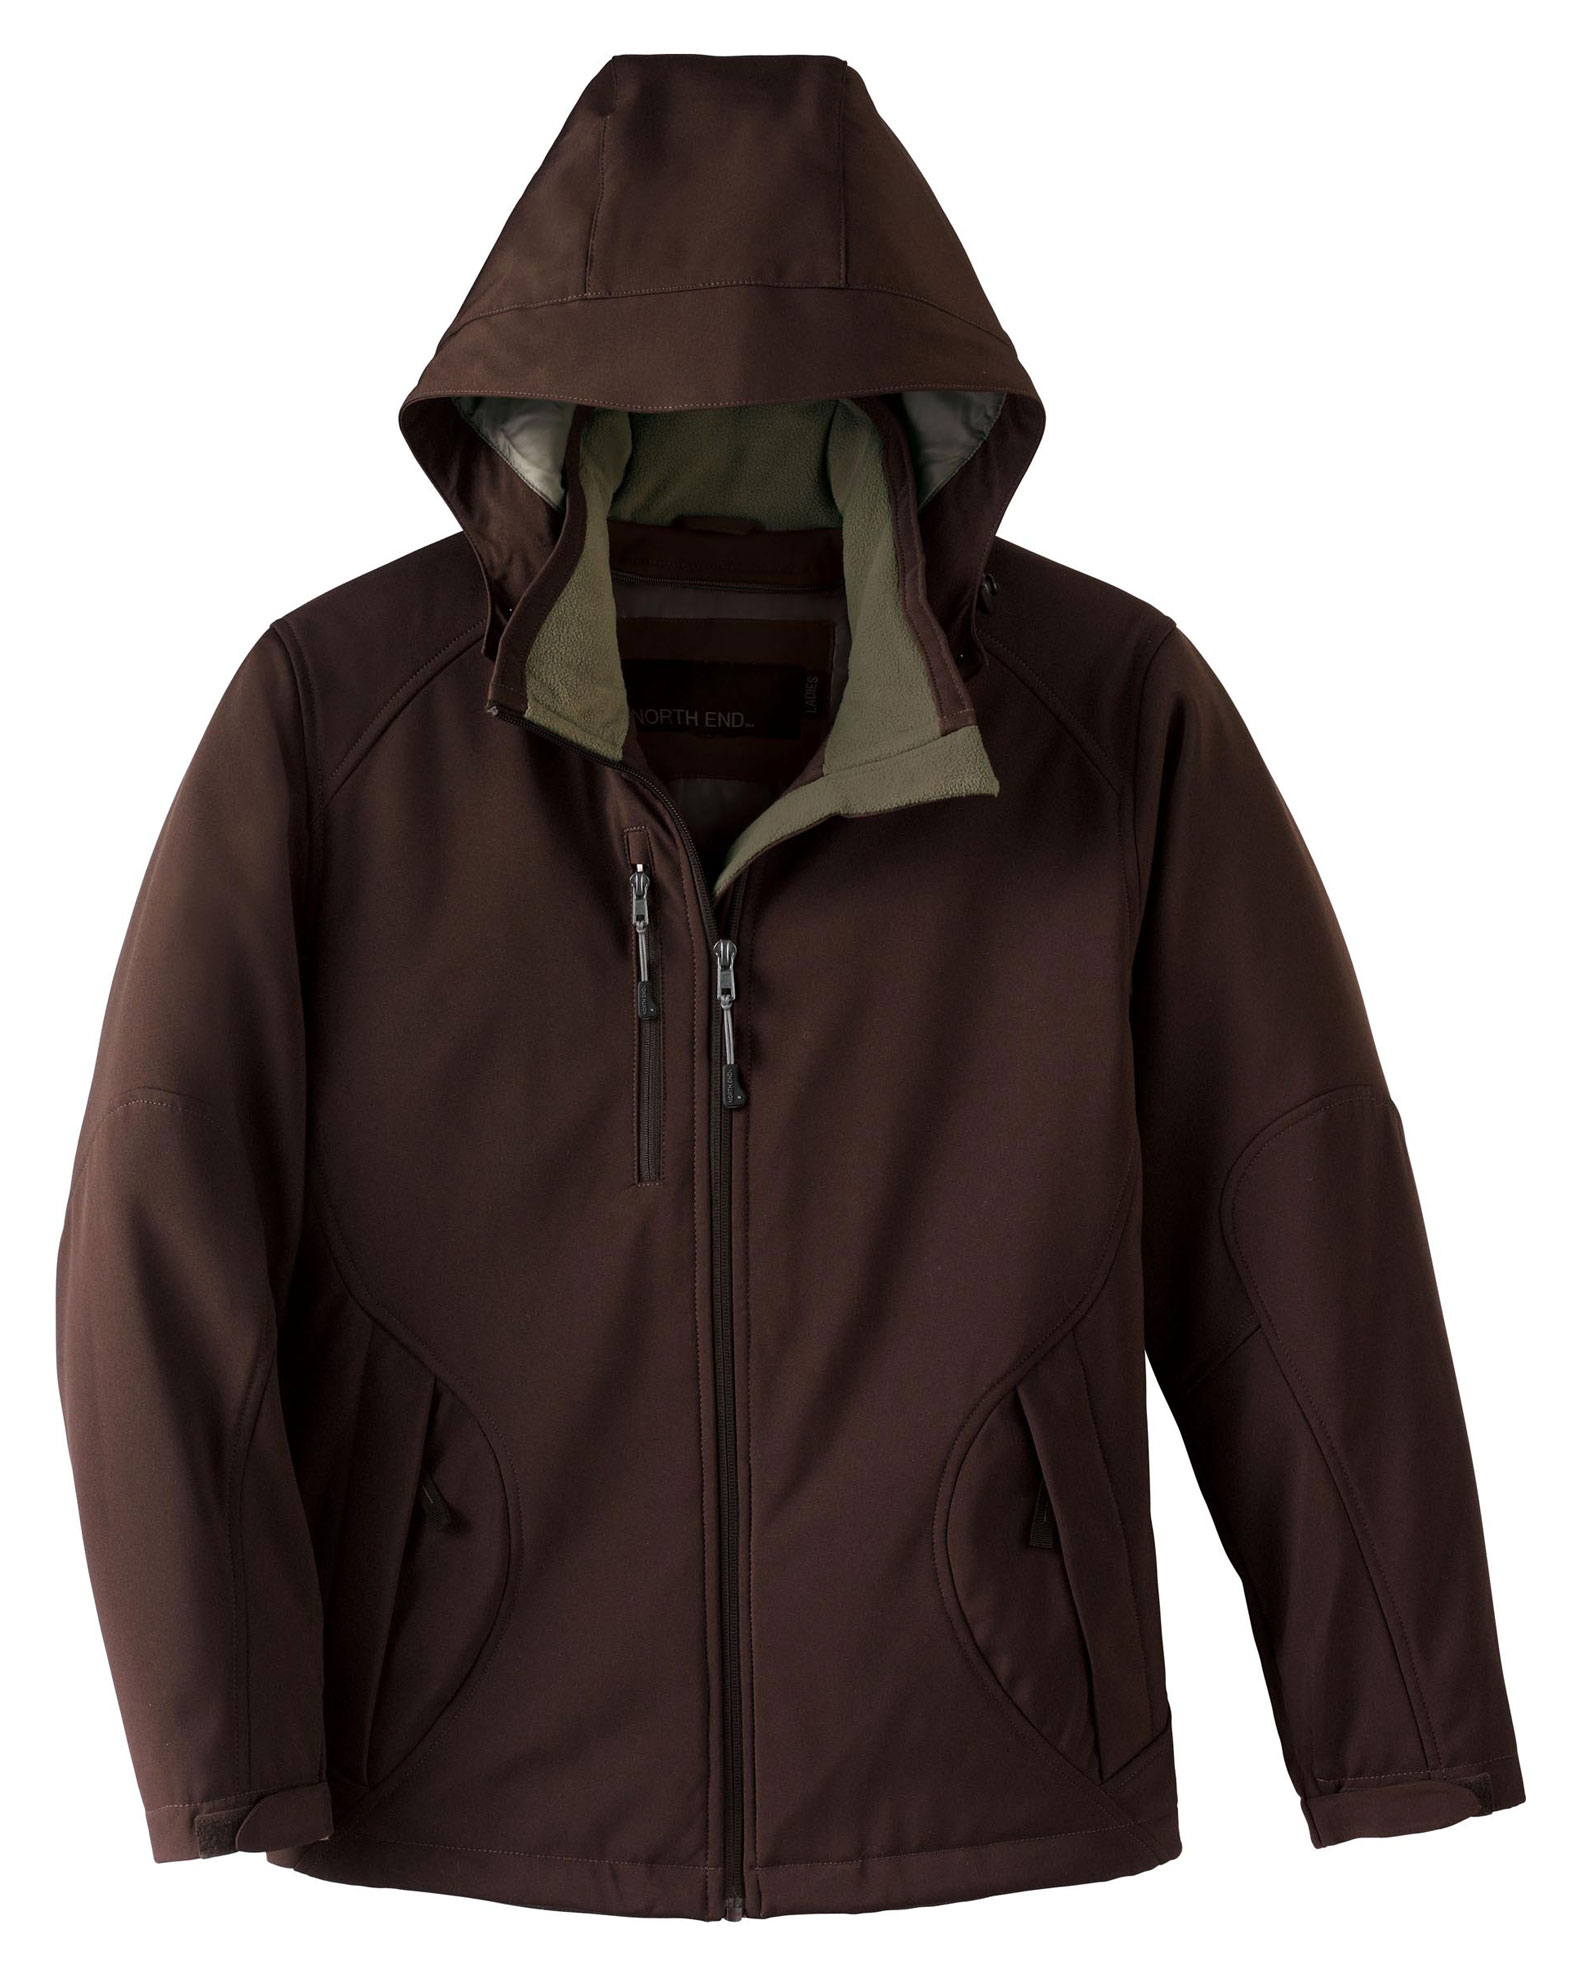 North End Ladies Glacier Insulated Soft Shell